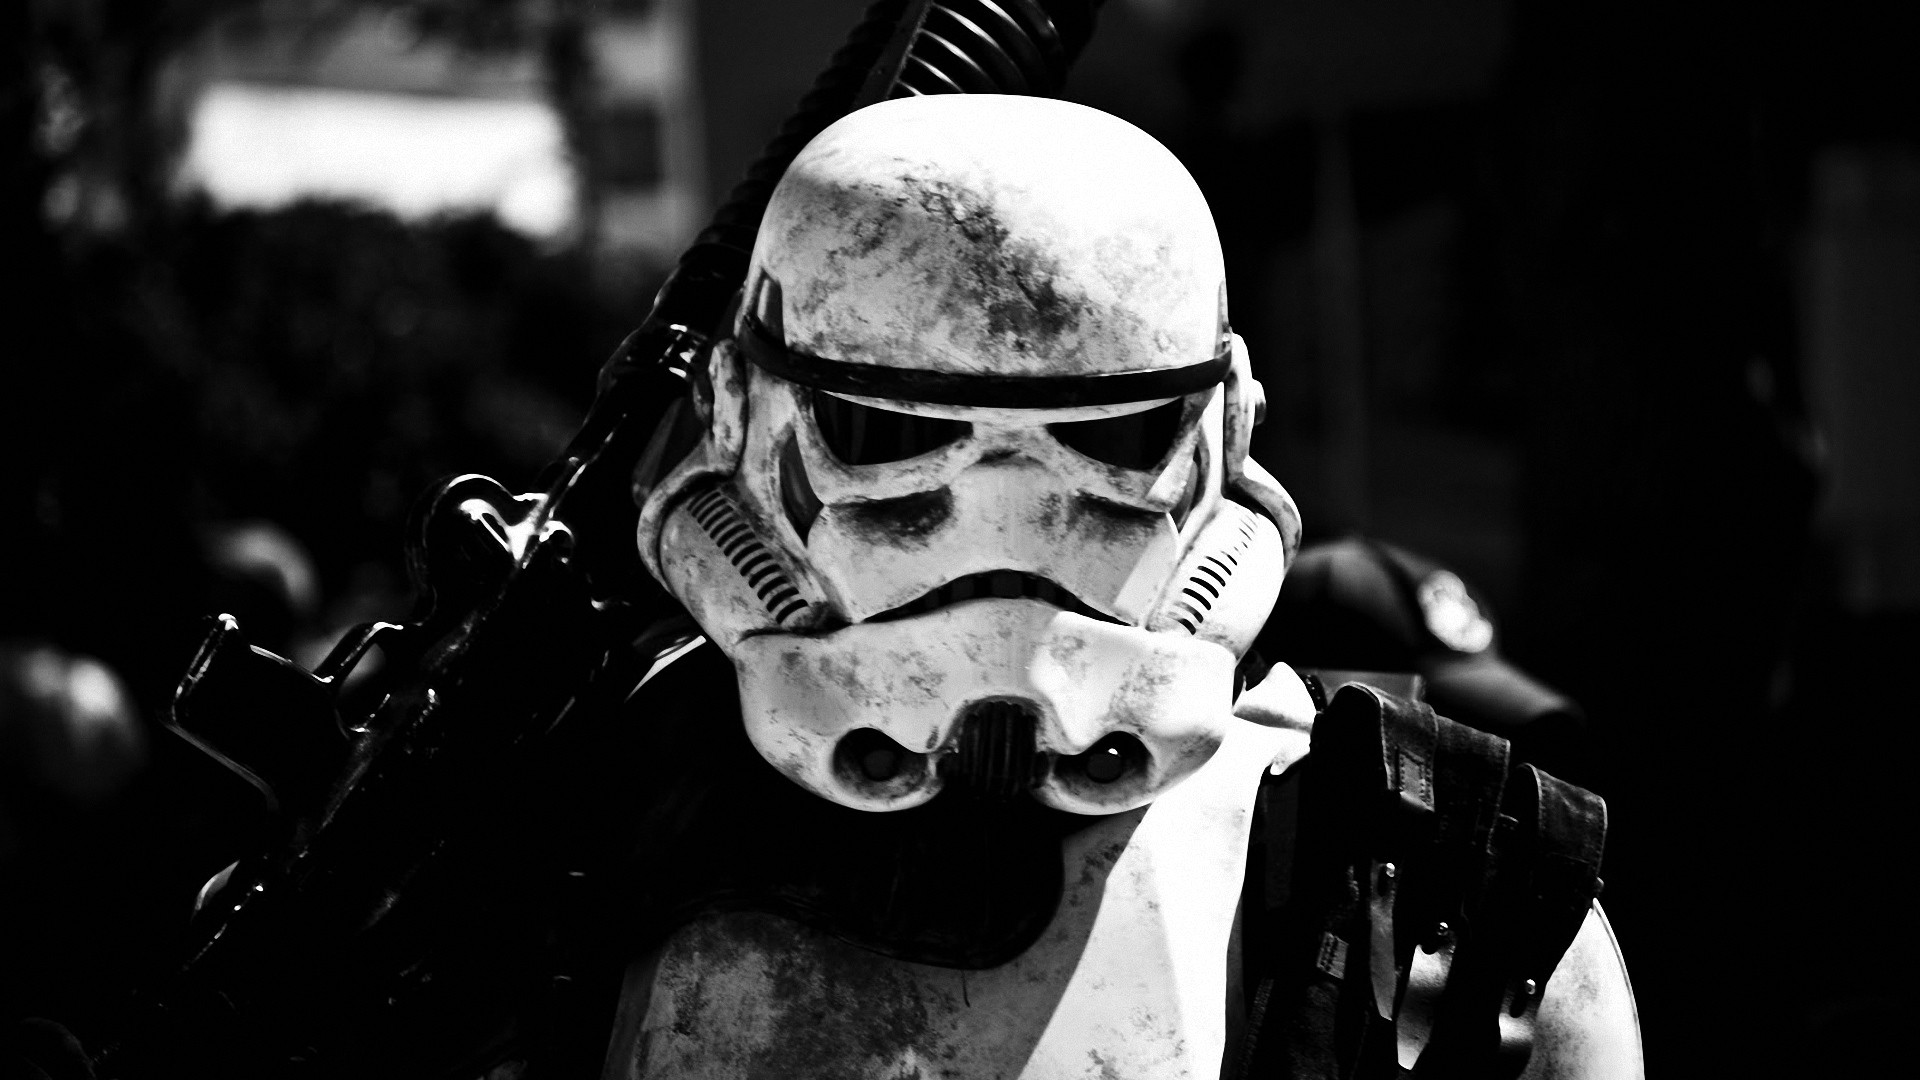 star-wars-stormtrooper.jpg